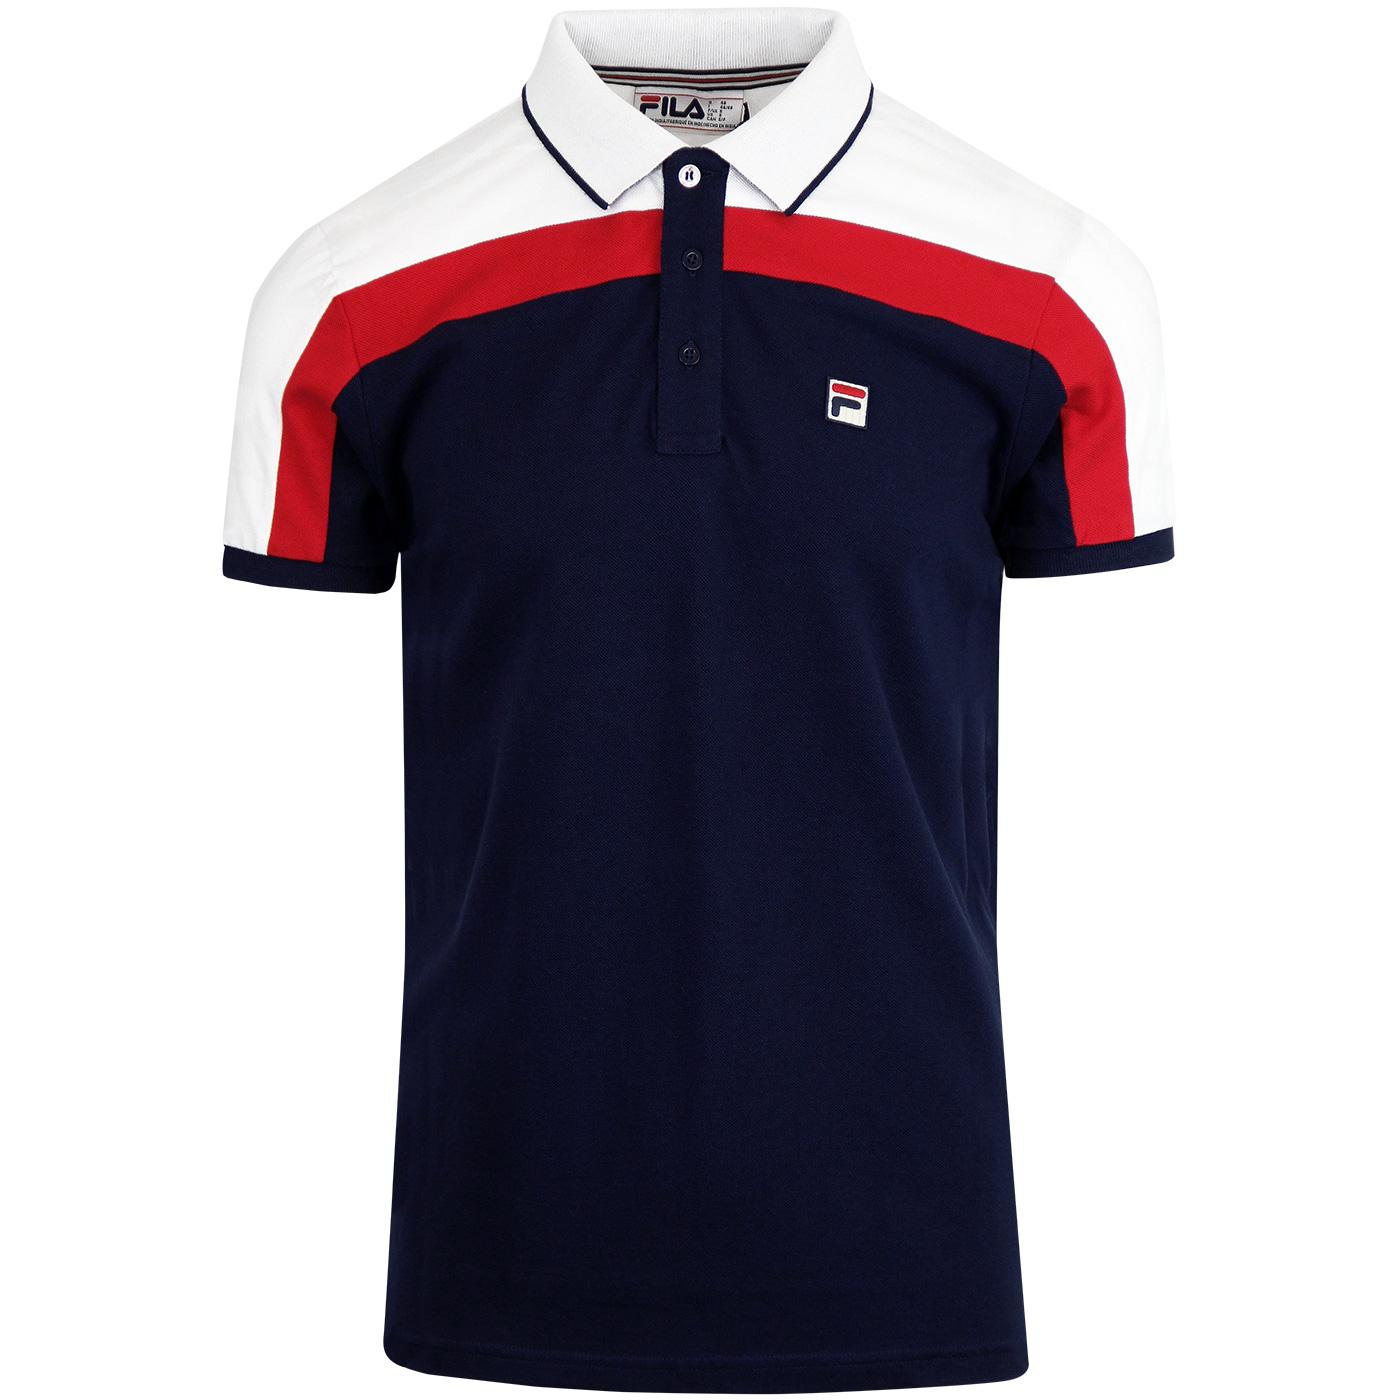 e331a665 Spencer FILA VINTAGE Retro 70s Mens Polo Shirt in Navy